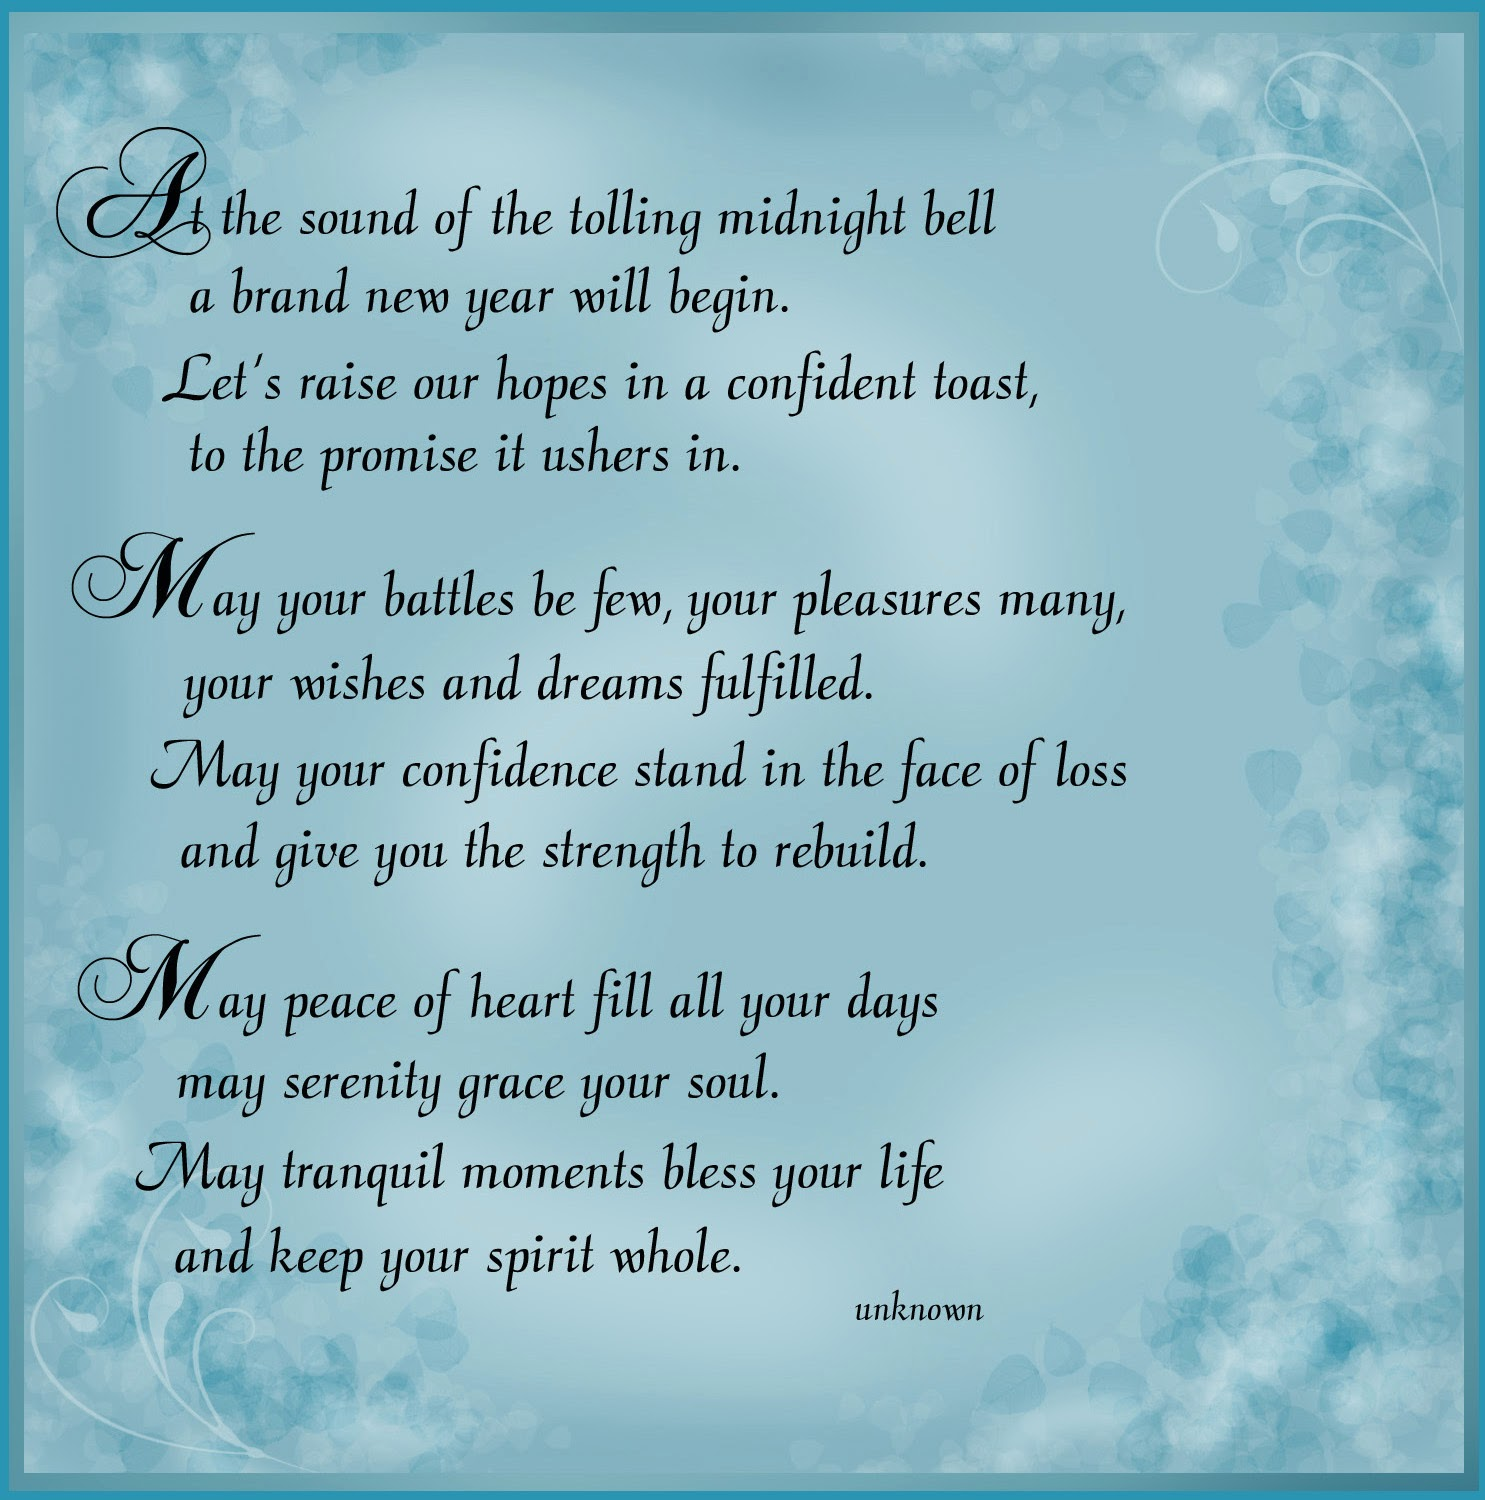 New Year Quotes For Life: New Year 2014 Wishes Poems Poetry Collection